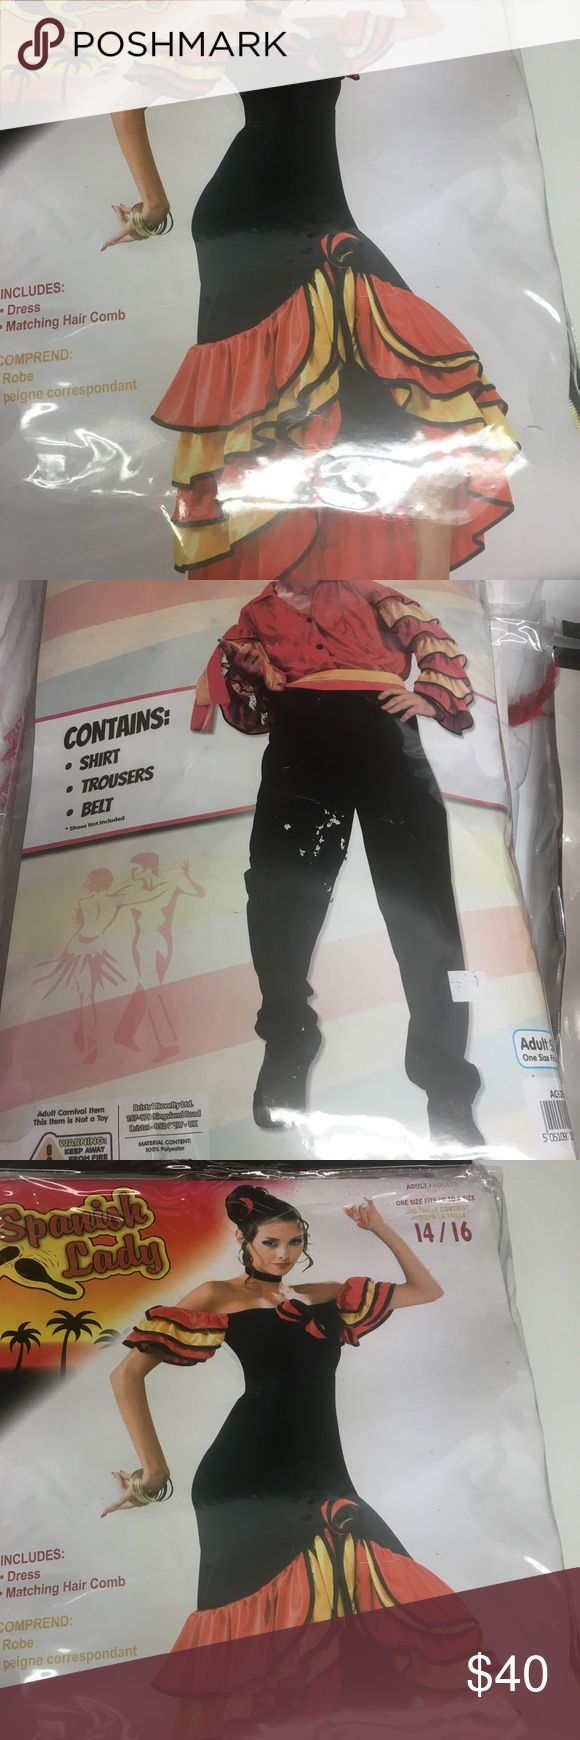 Guy & girl Spanish dancer costume Great condition. Perfecf for Halloween! Will sell separately! Other